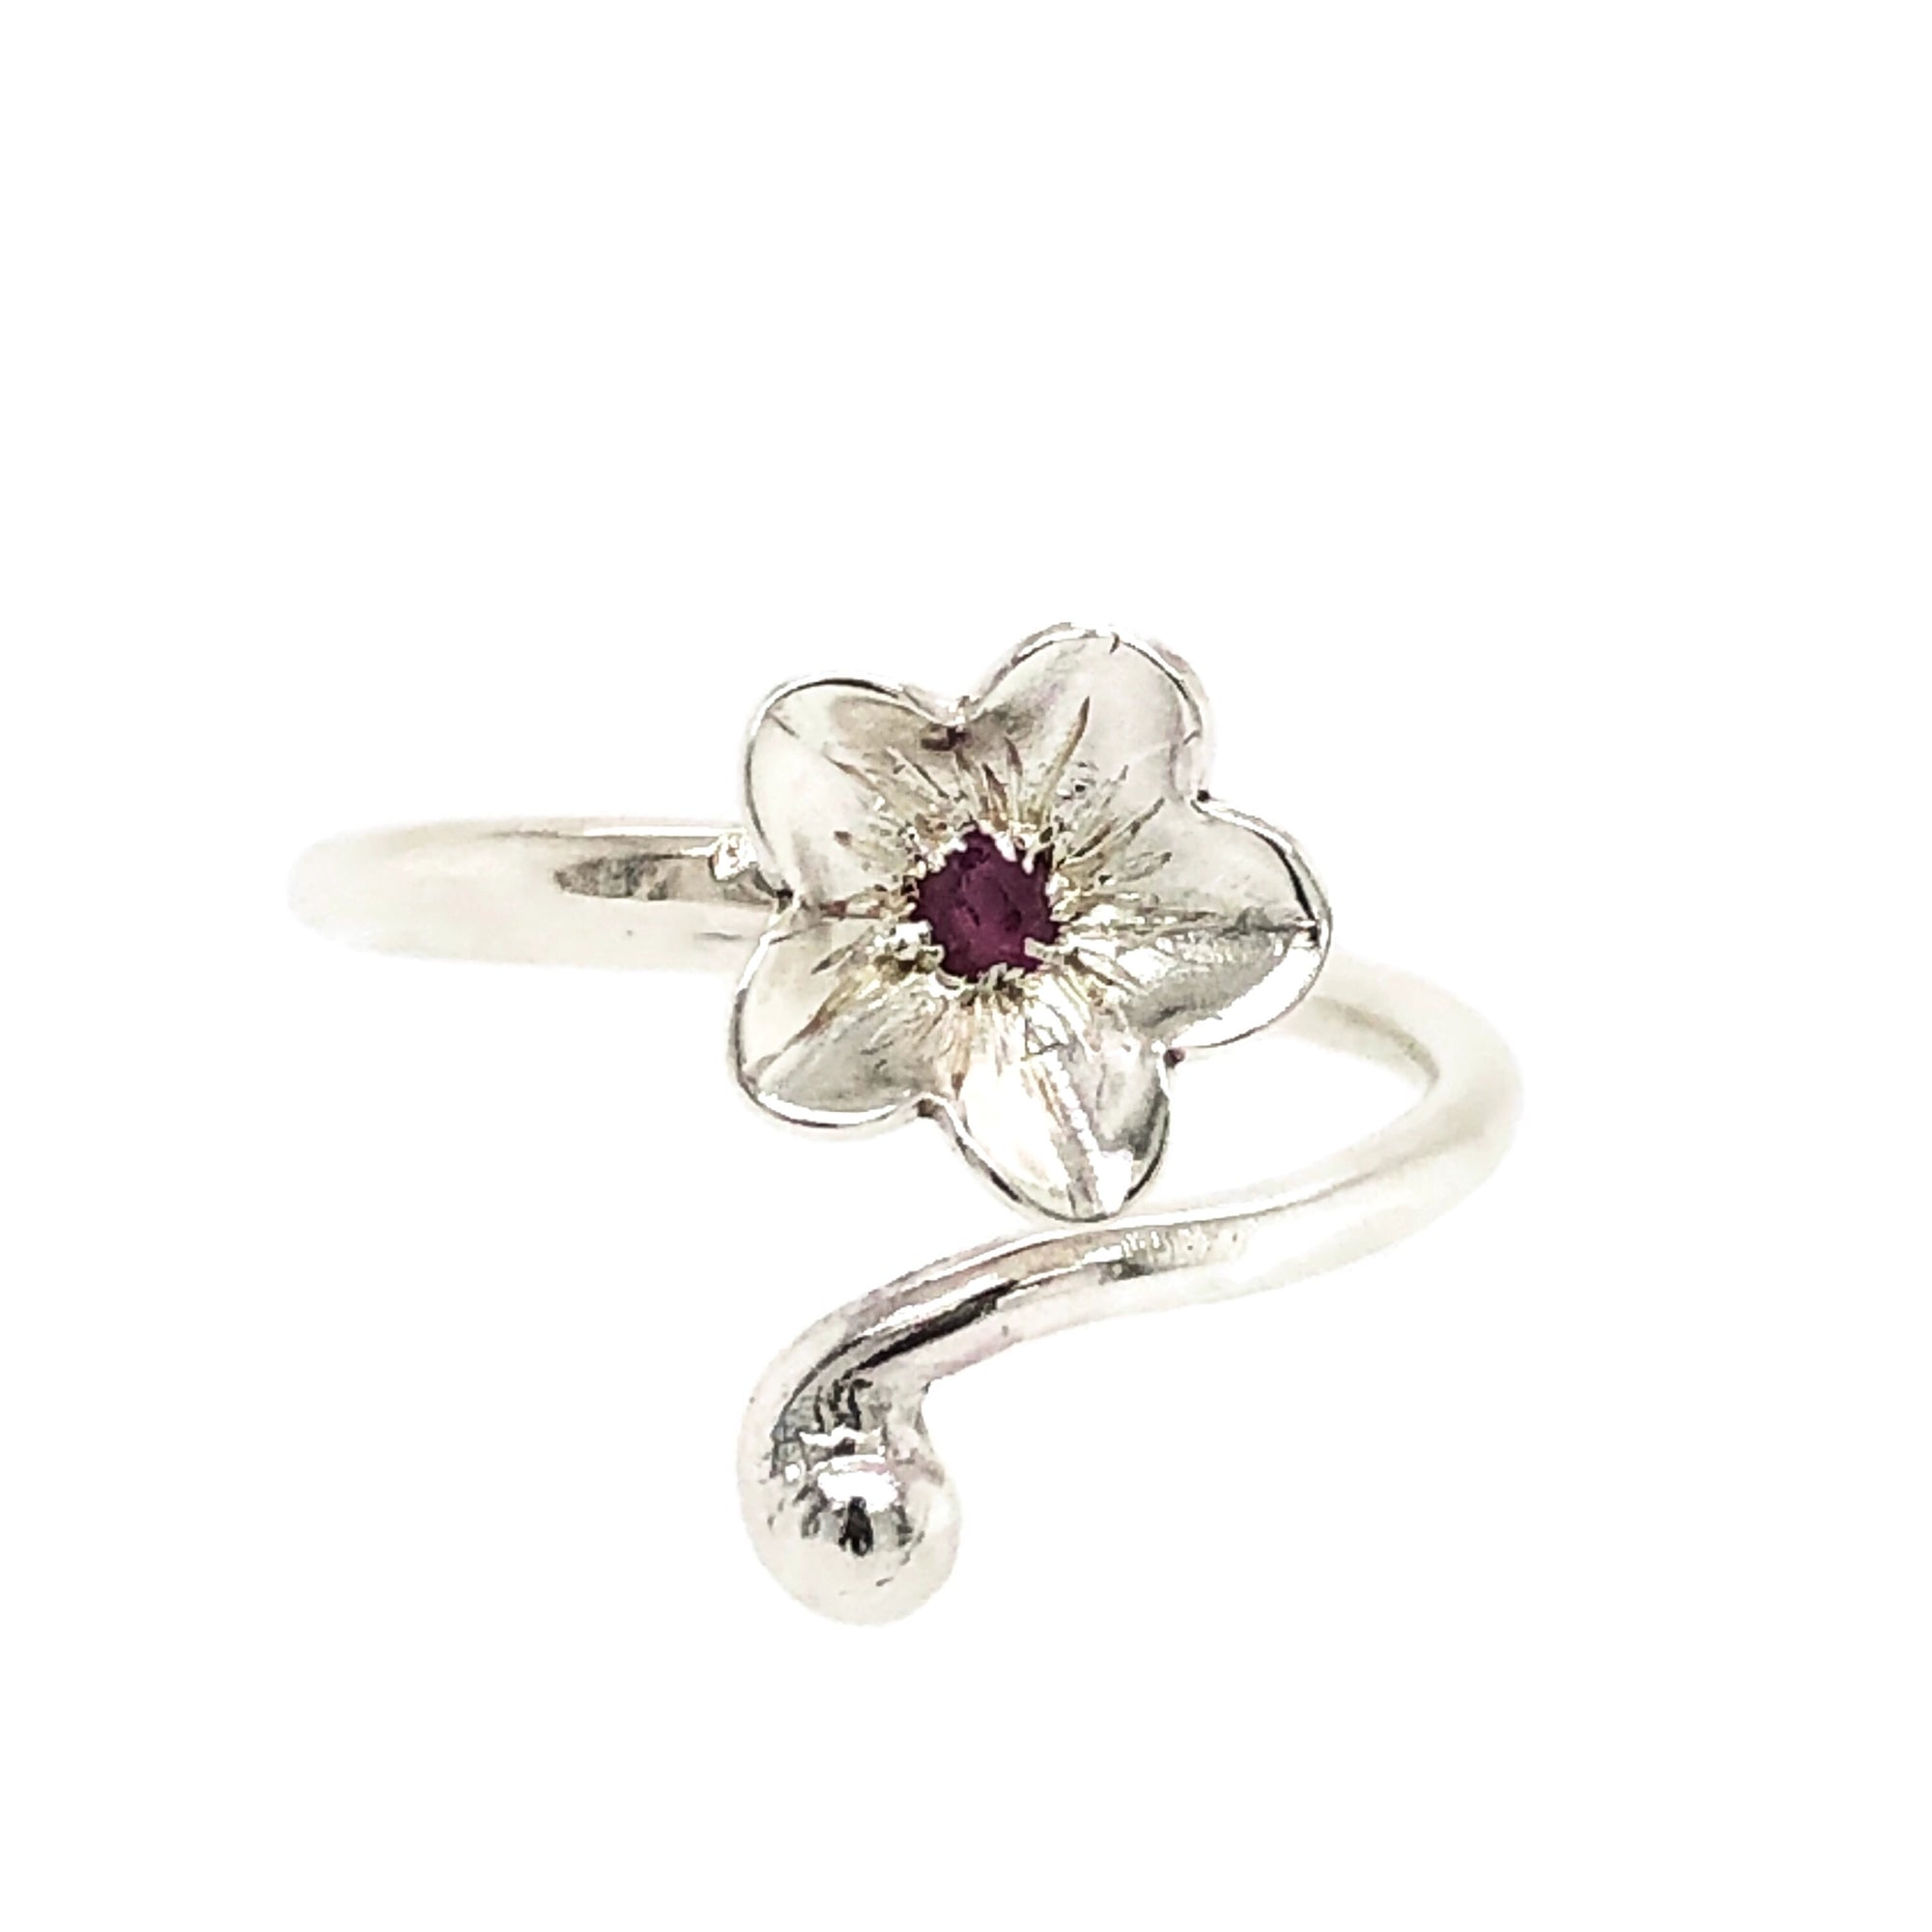 Rose Cut Pink Ruby Blossom and Bud Tendril Wrap Stacking Ring